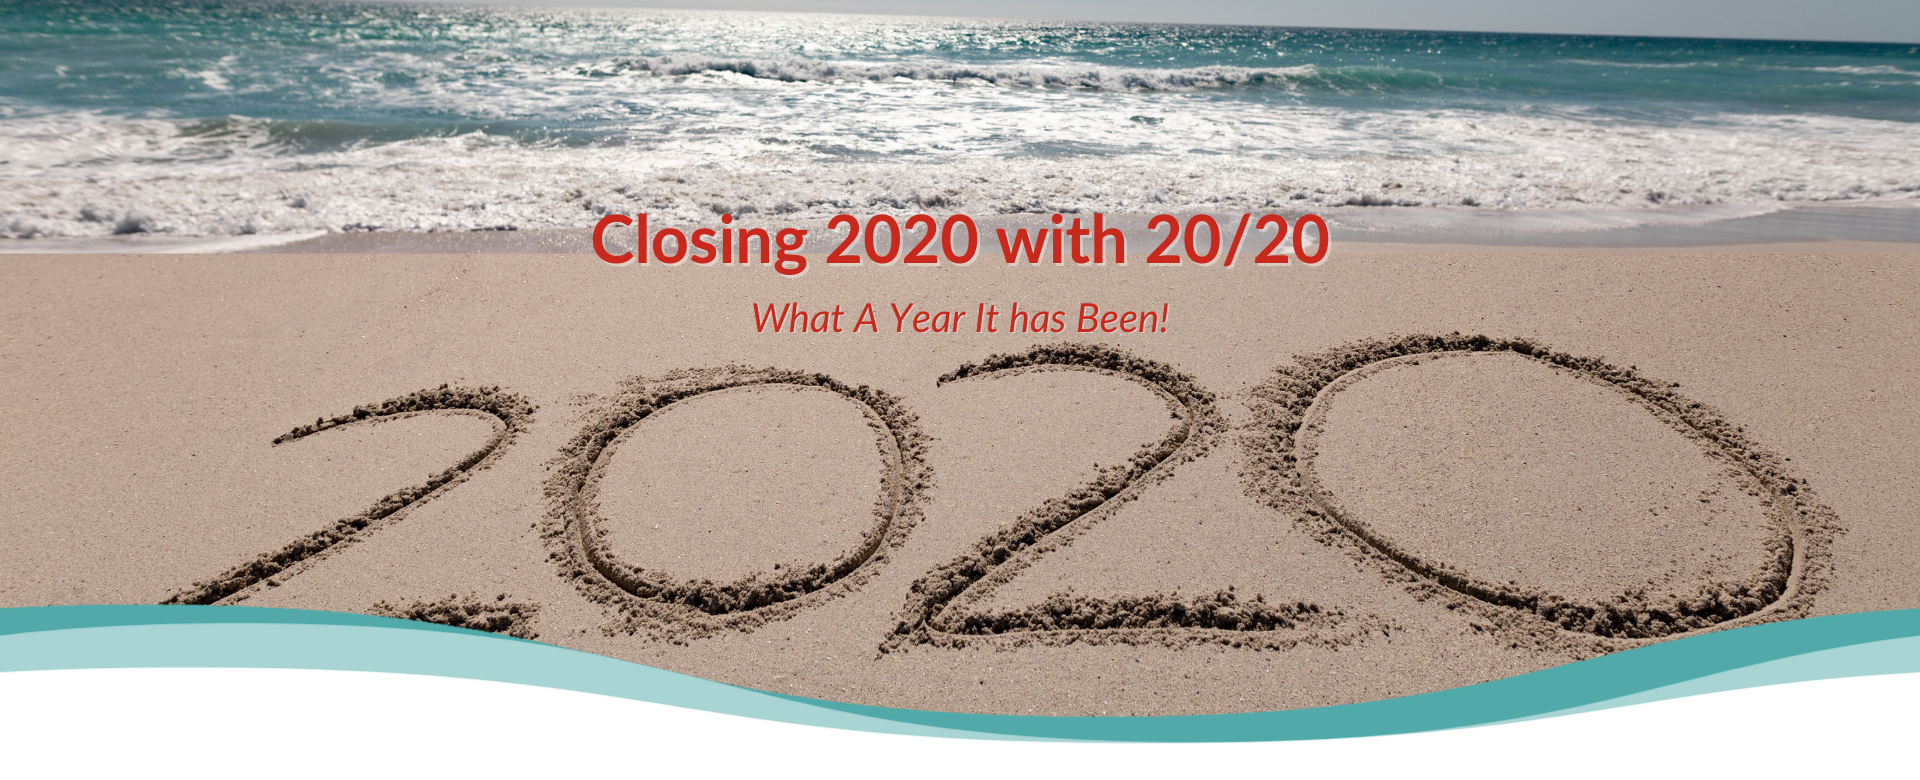 Closing 2020 with 20/20